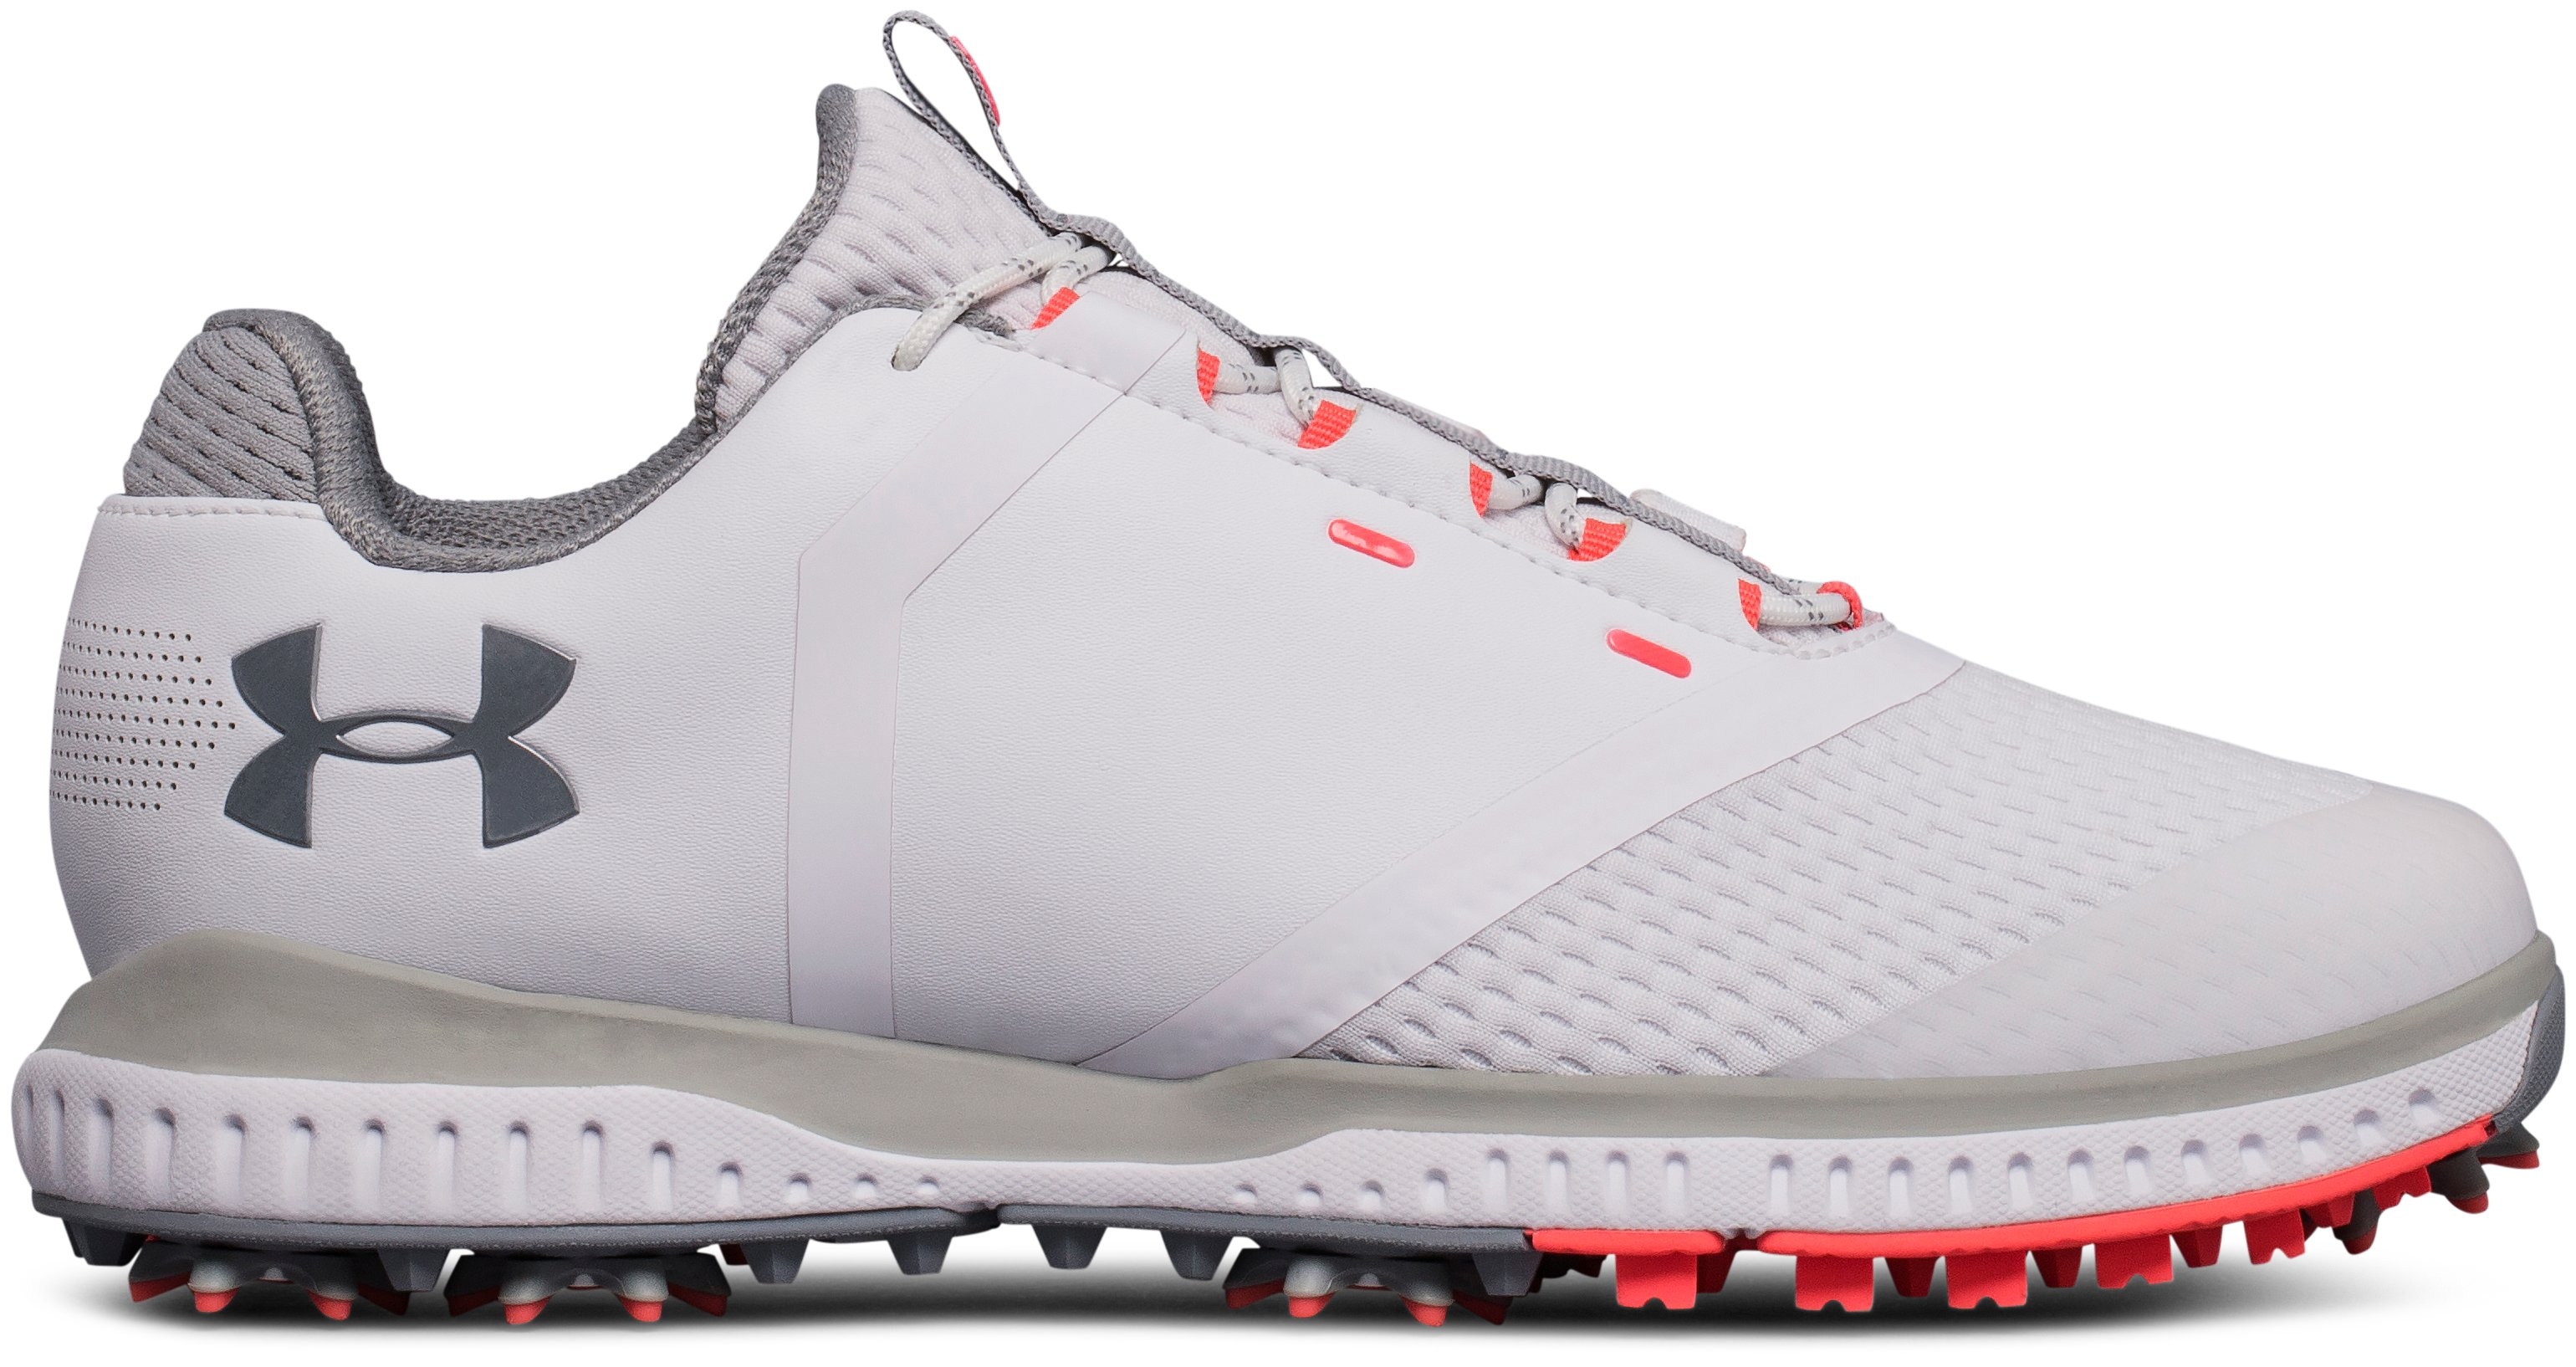 Women's UA Fade RST Golf Shoes, 360 degree view